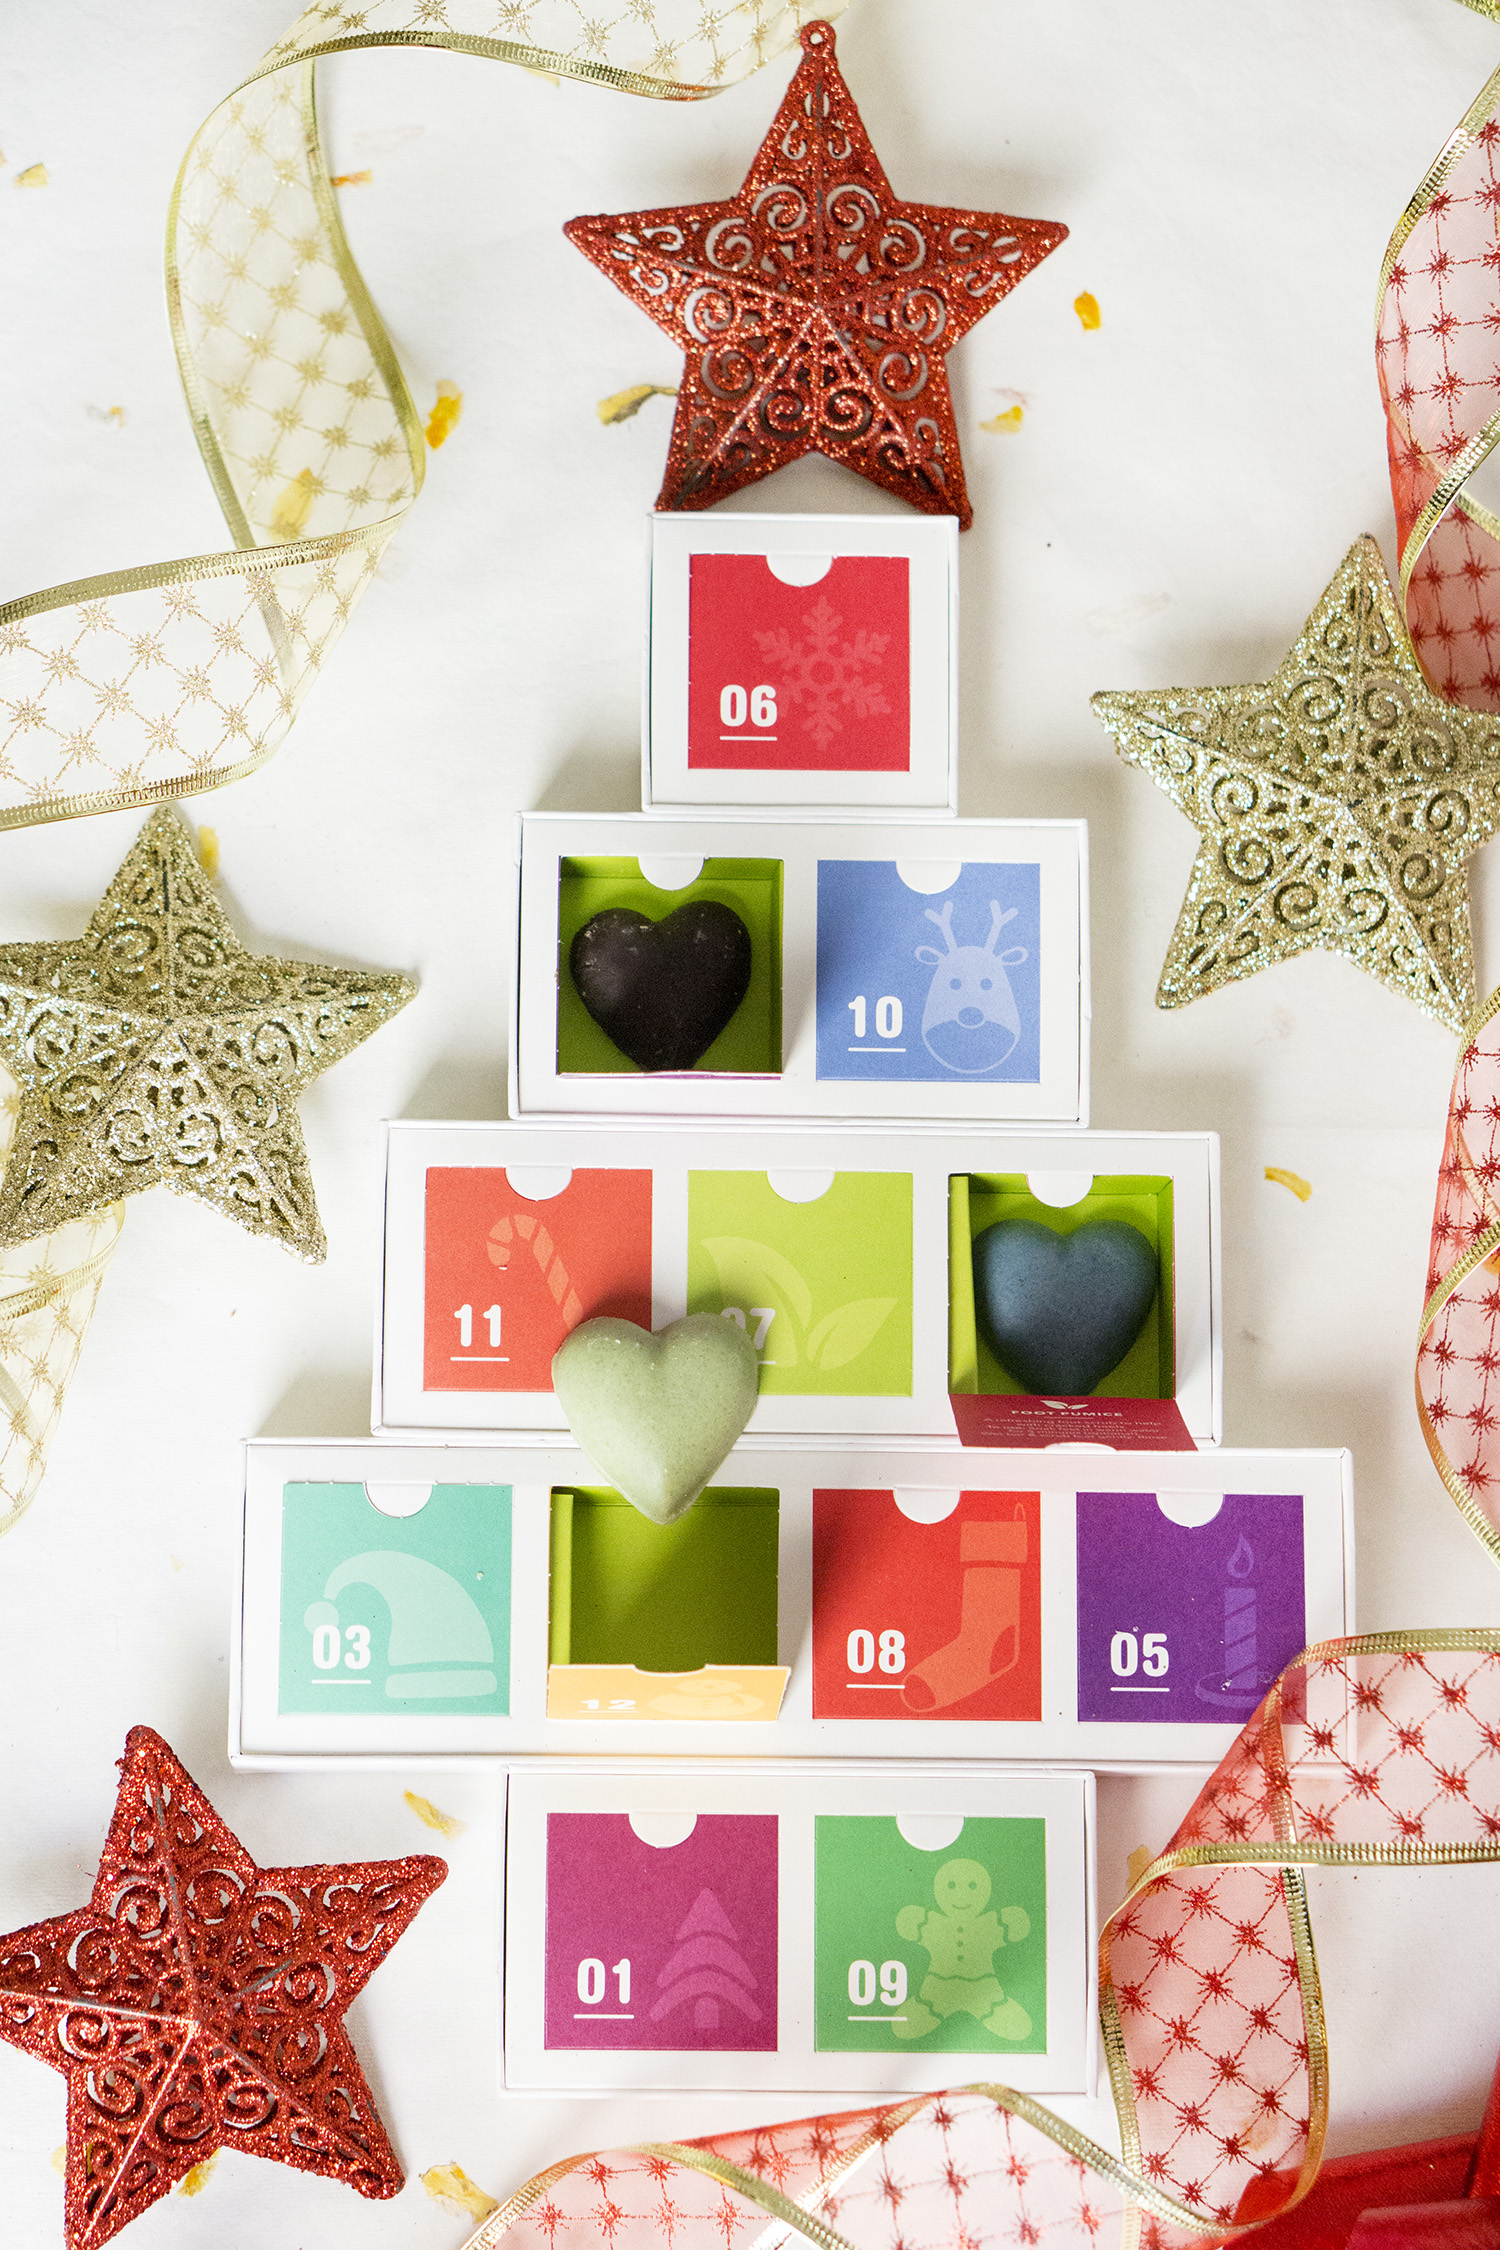 ETHIQUE 12 DAYS OF CHRISTMAS ADVENT CALENDAR REVIEW